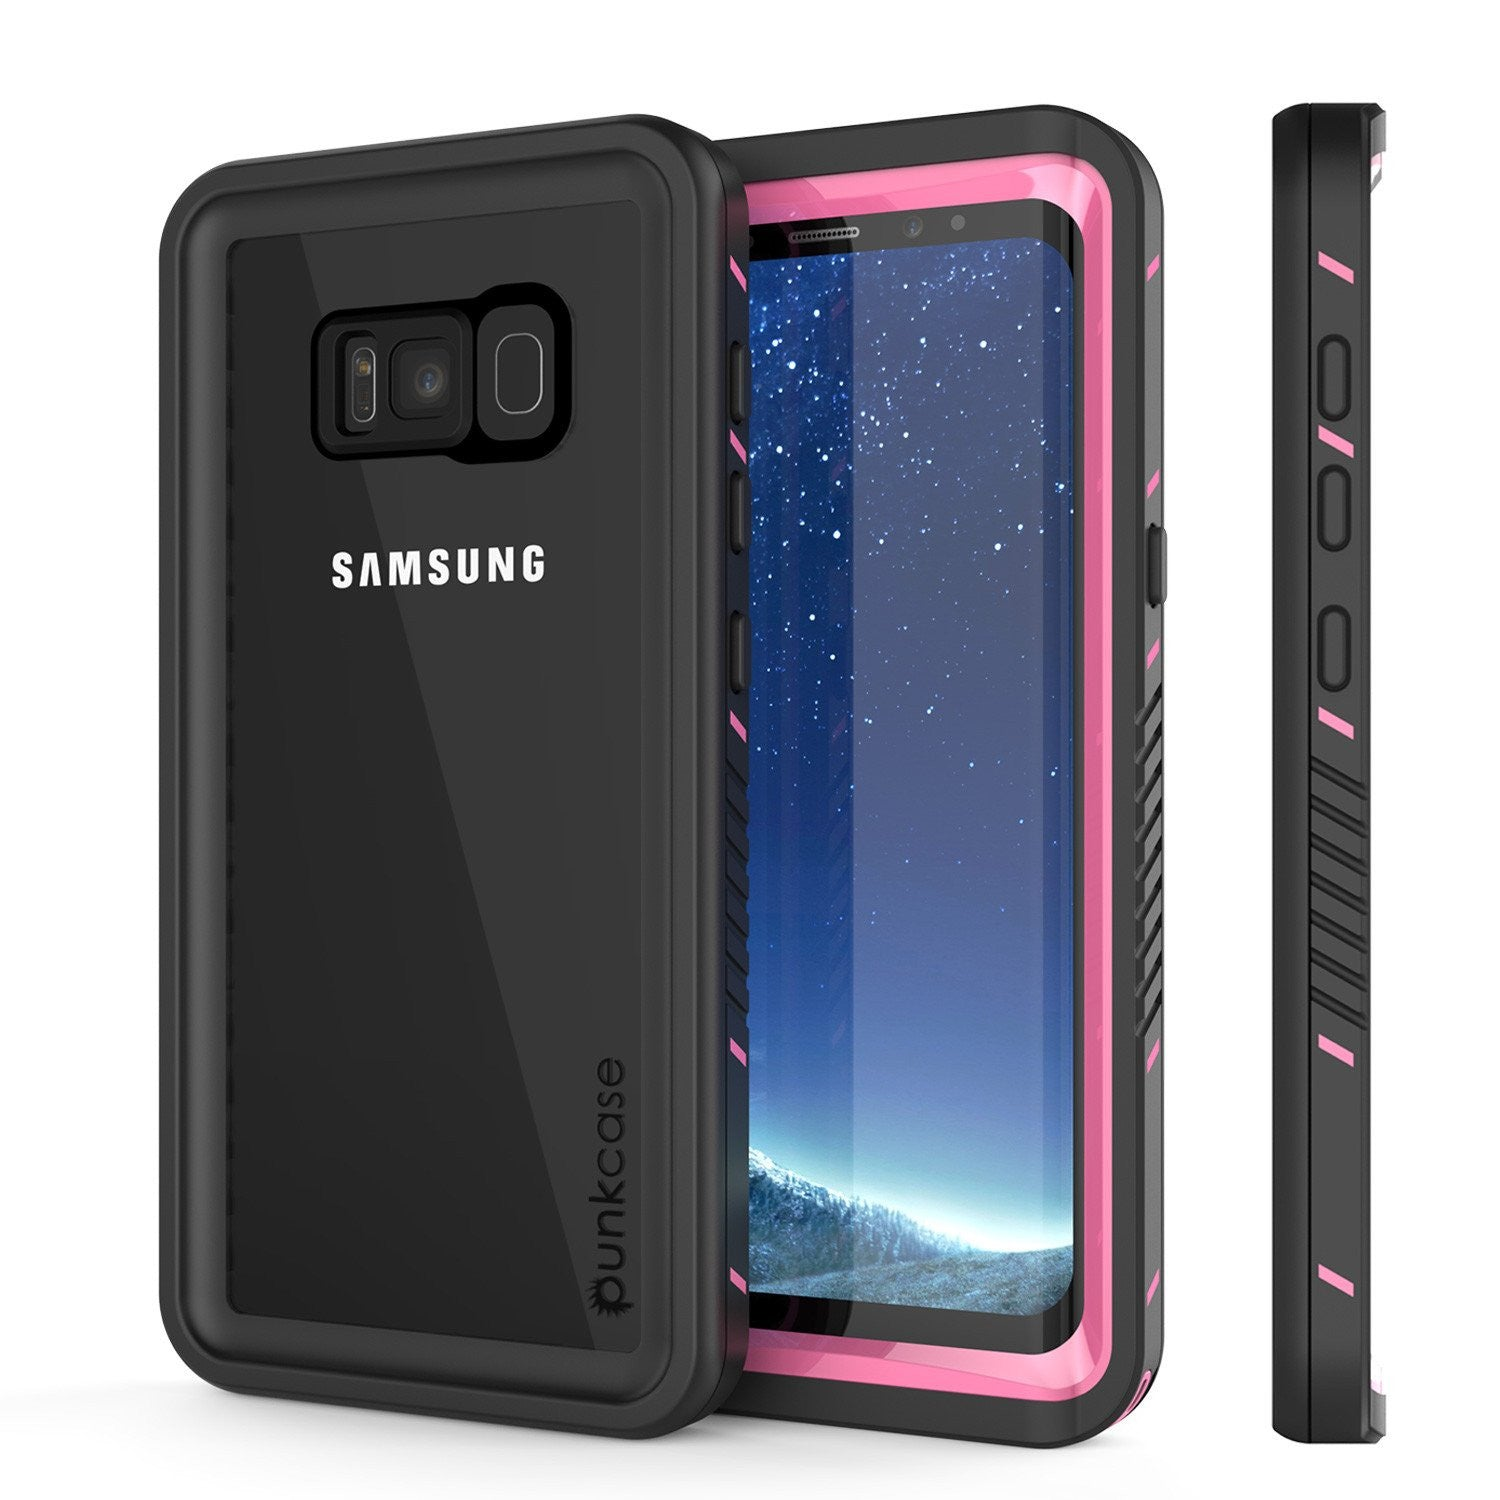 Galaxy S8 PLUS Waterproof Case, Punkcase [Extreme Series] [Slim Fit] [IP68 Certified] [Shockproof] [Snowproof] [Dirproof] Armor Cover W/ Built In Screen Protector for Samsung Galaxy S8+ [Pink]